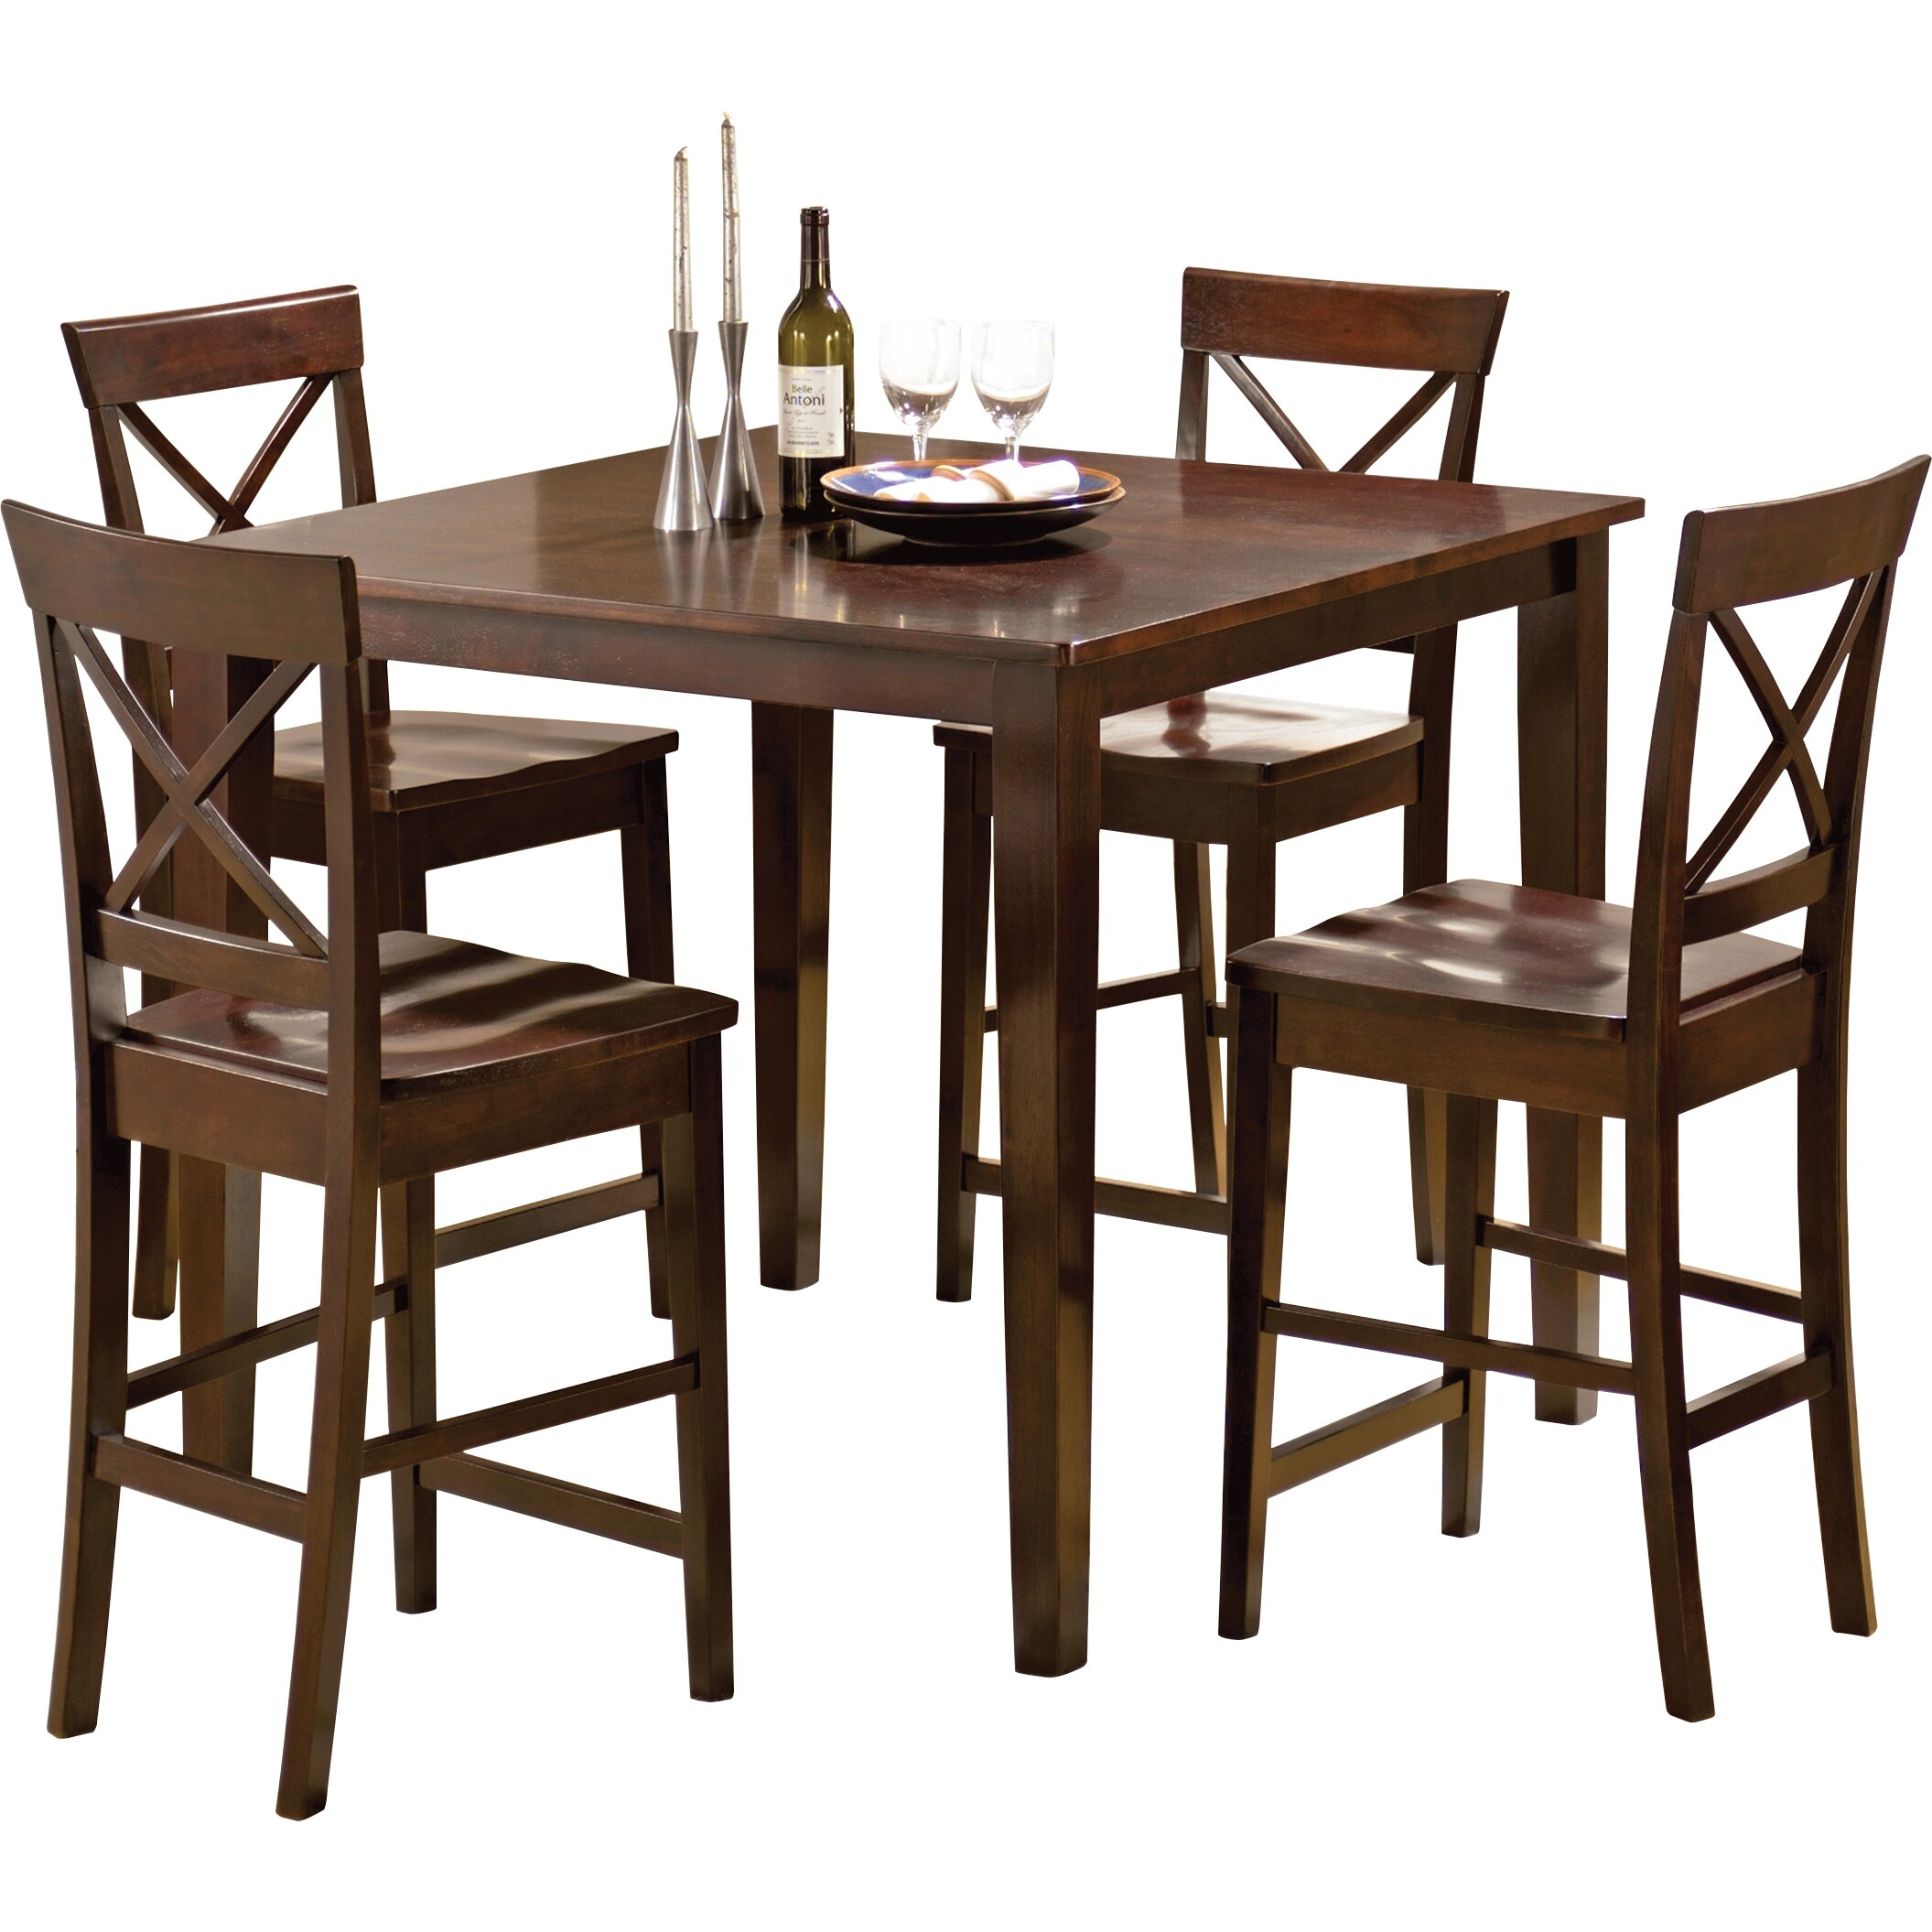 Steve silver furniture cobalt 5 piece counter height for Tall dinner table set